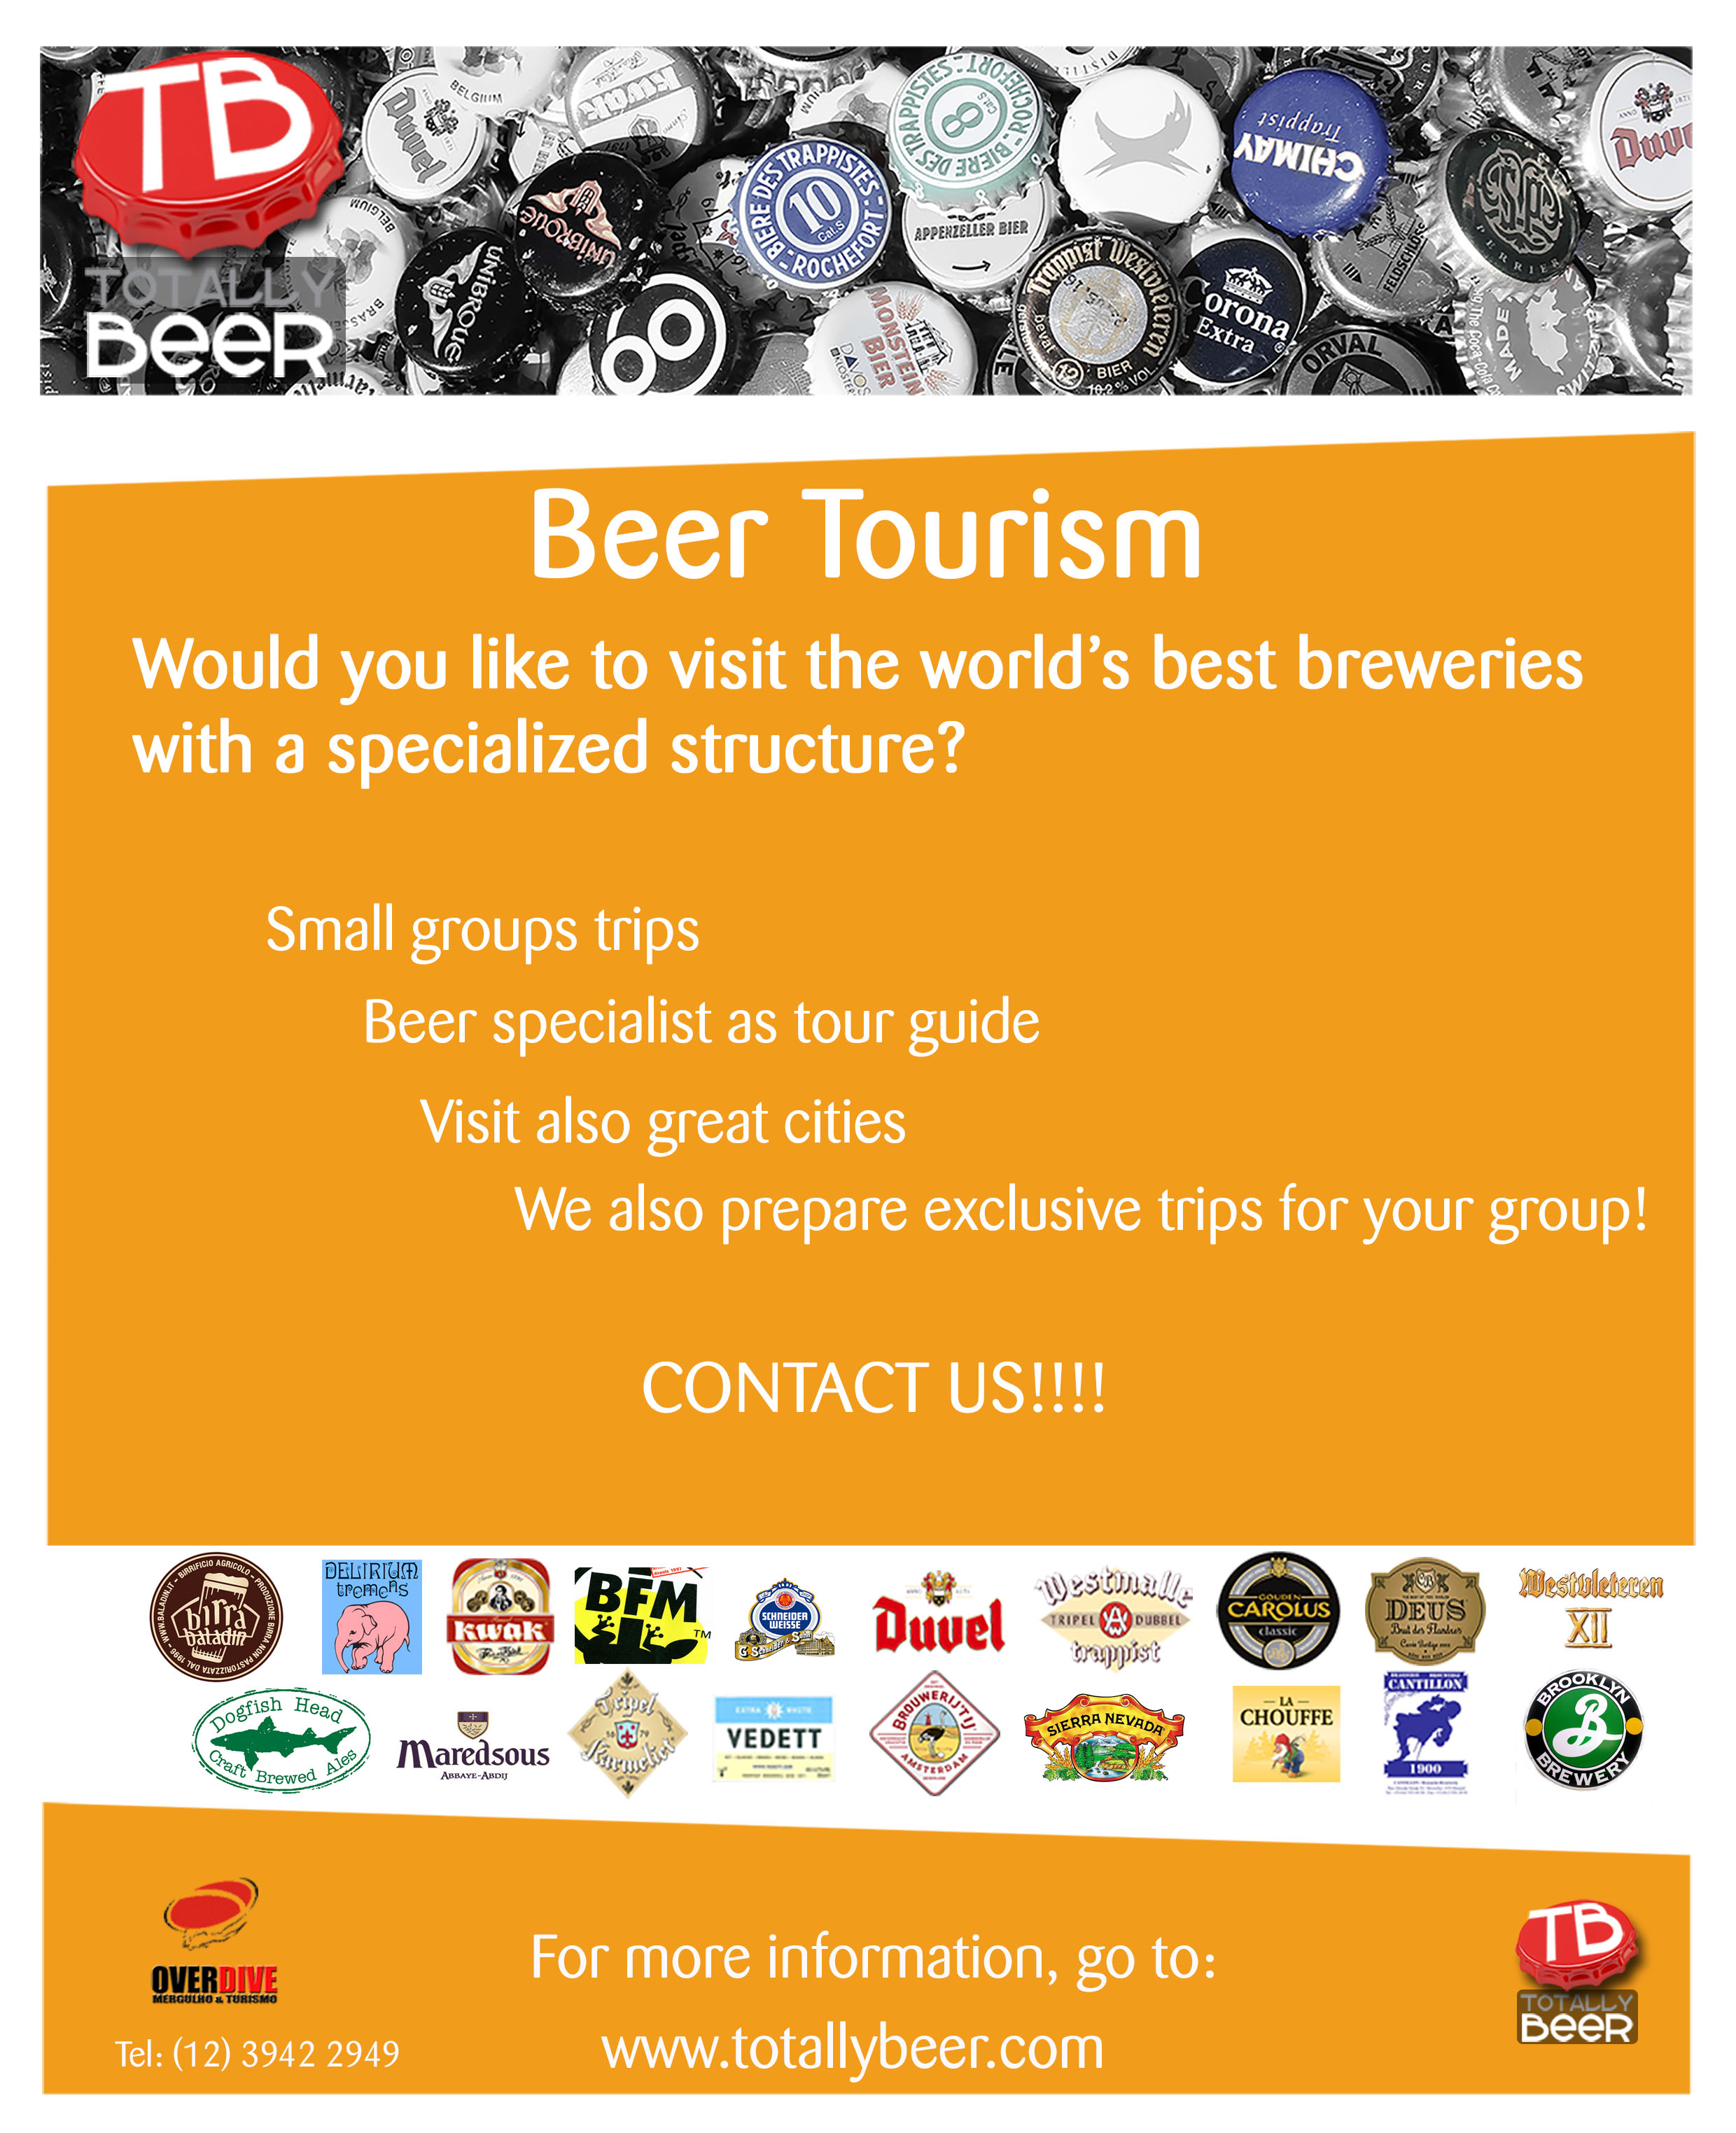 BE Beer Tourism